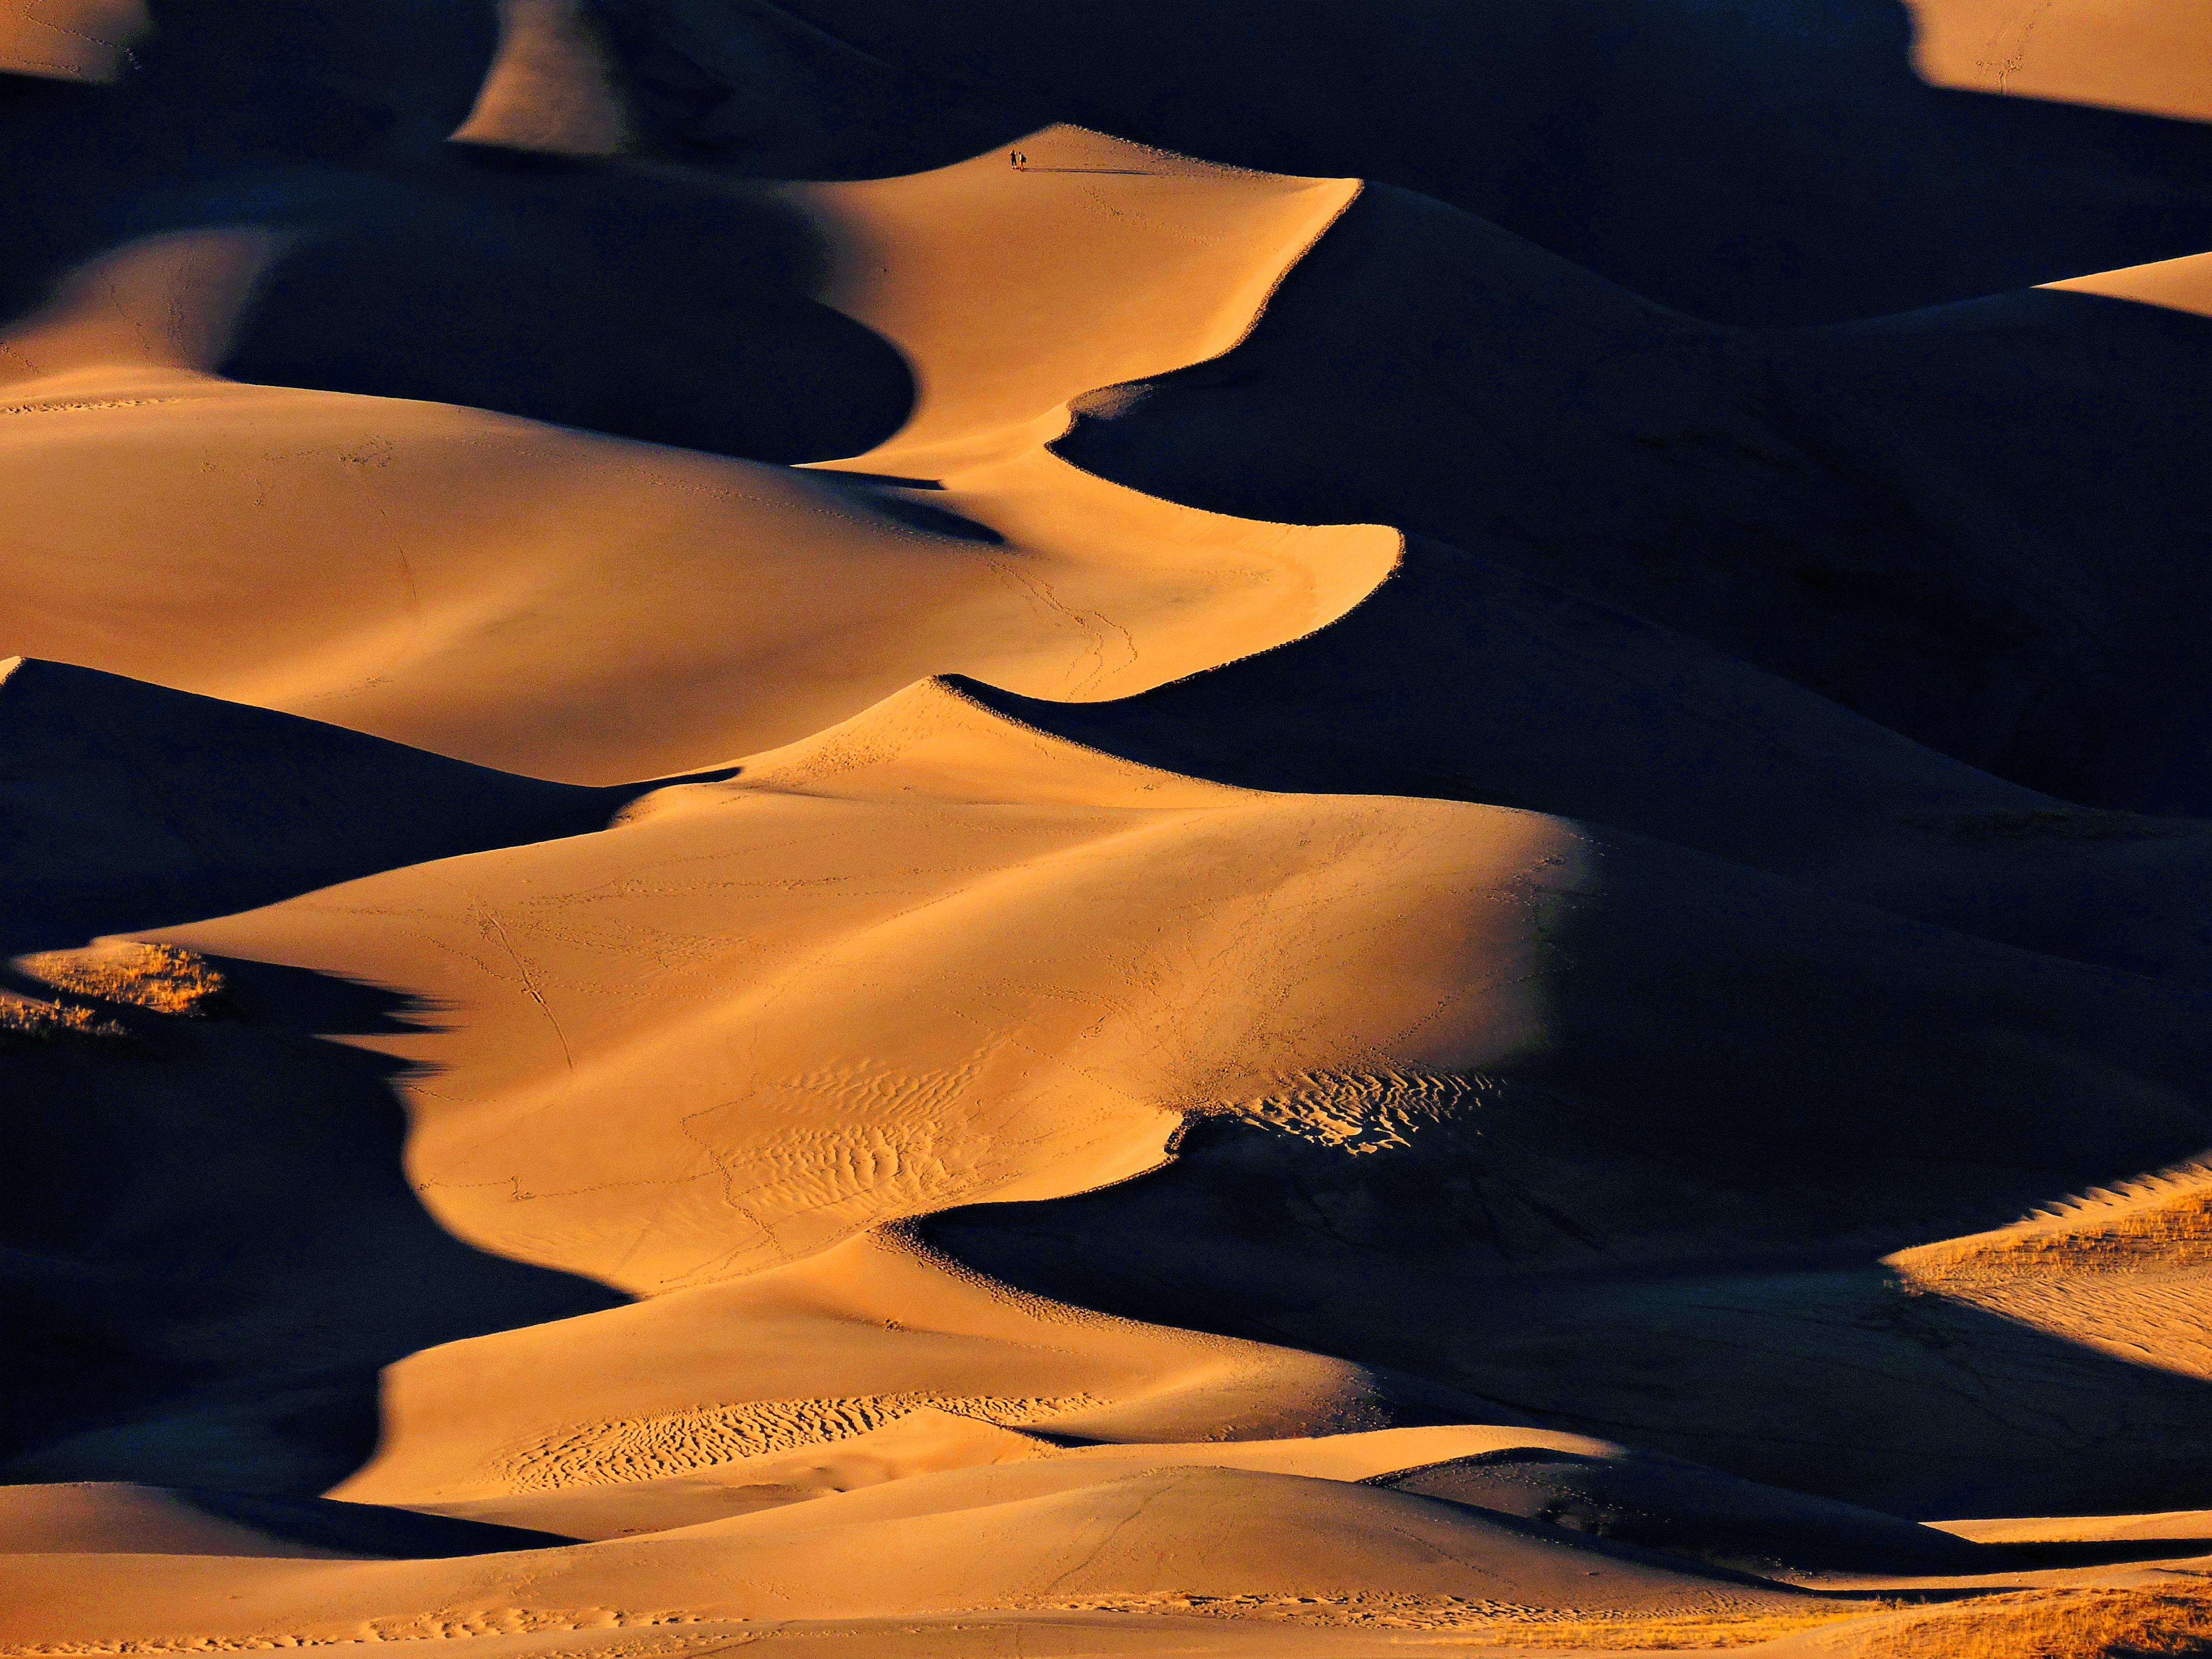 Two people walk on the Great Sand Dunes as shadows cover half the sand.